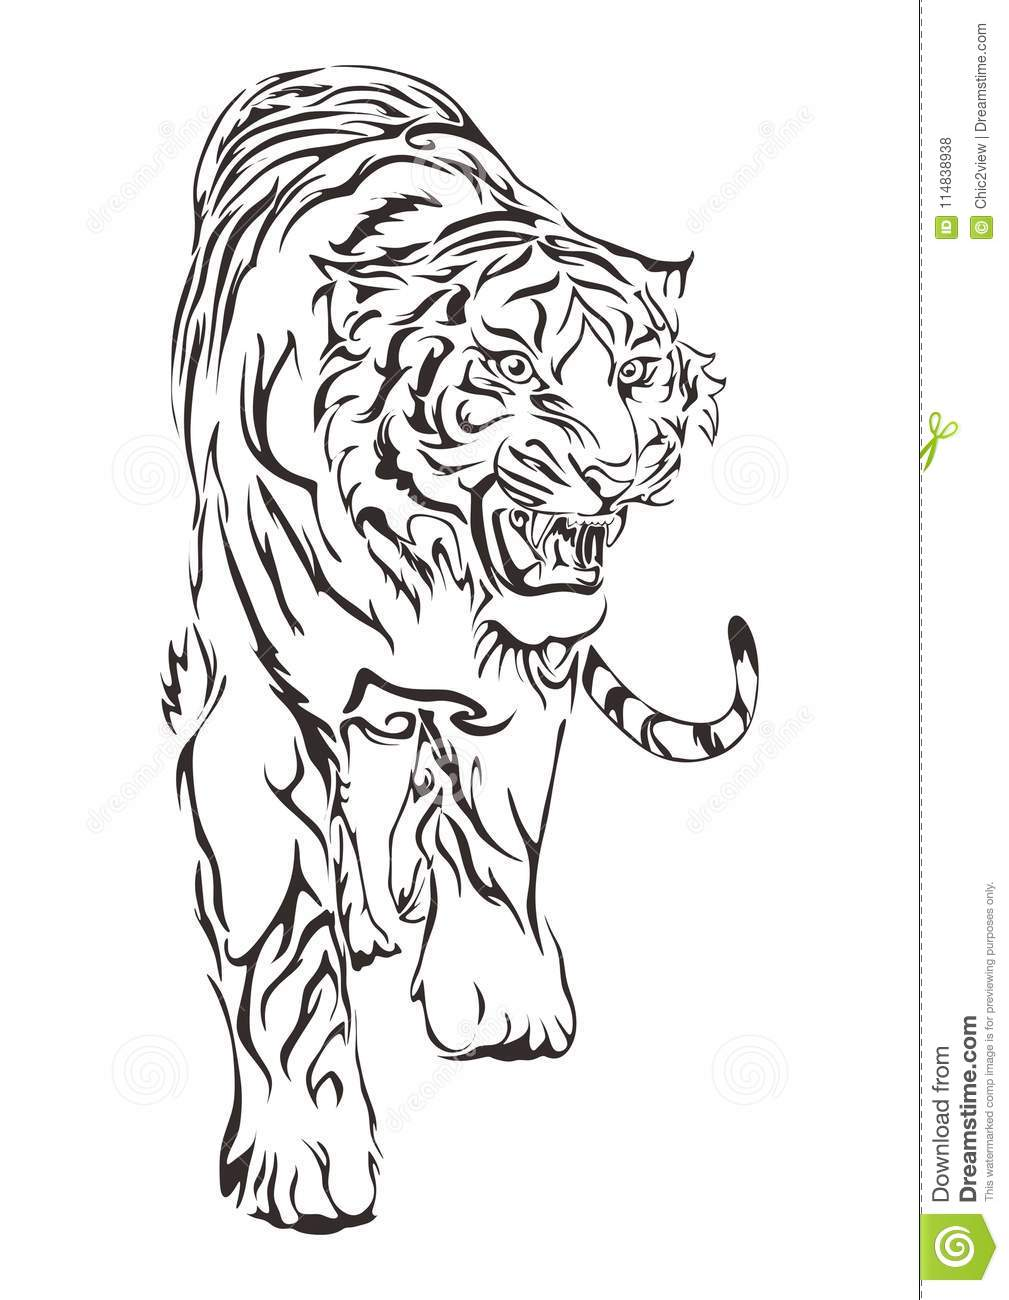 Tiger Walking And Roar Design By Hand Drawing For Tribal Tattoo